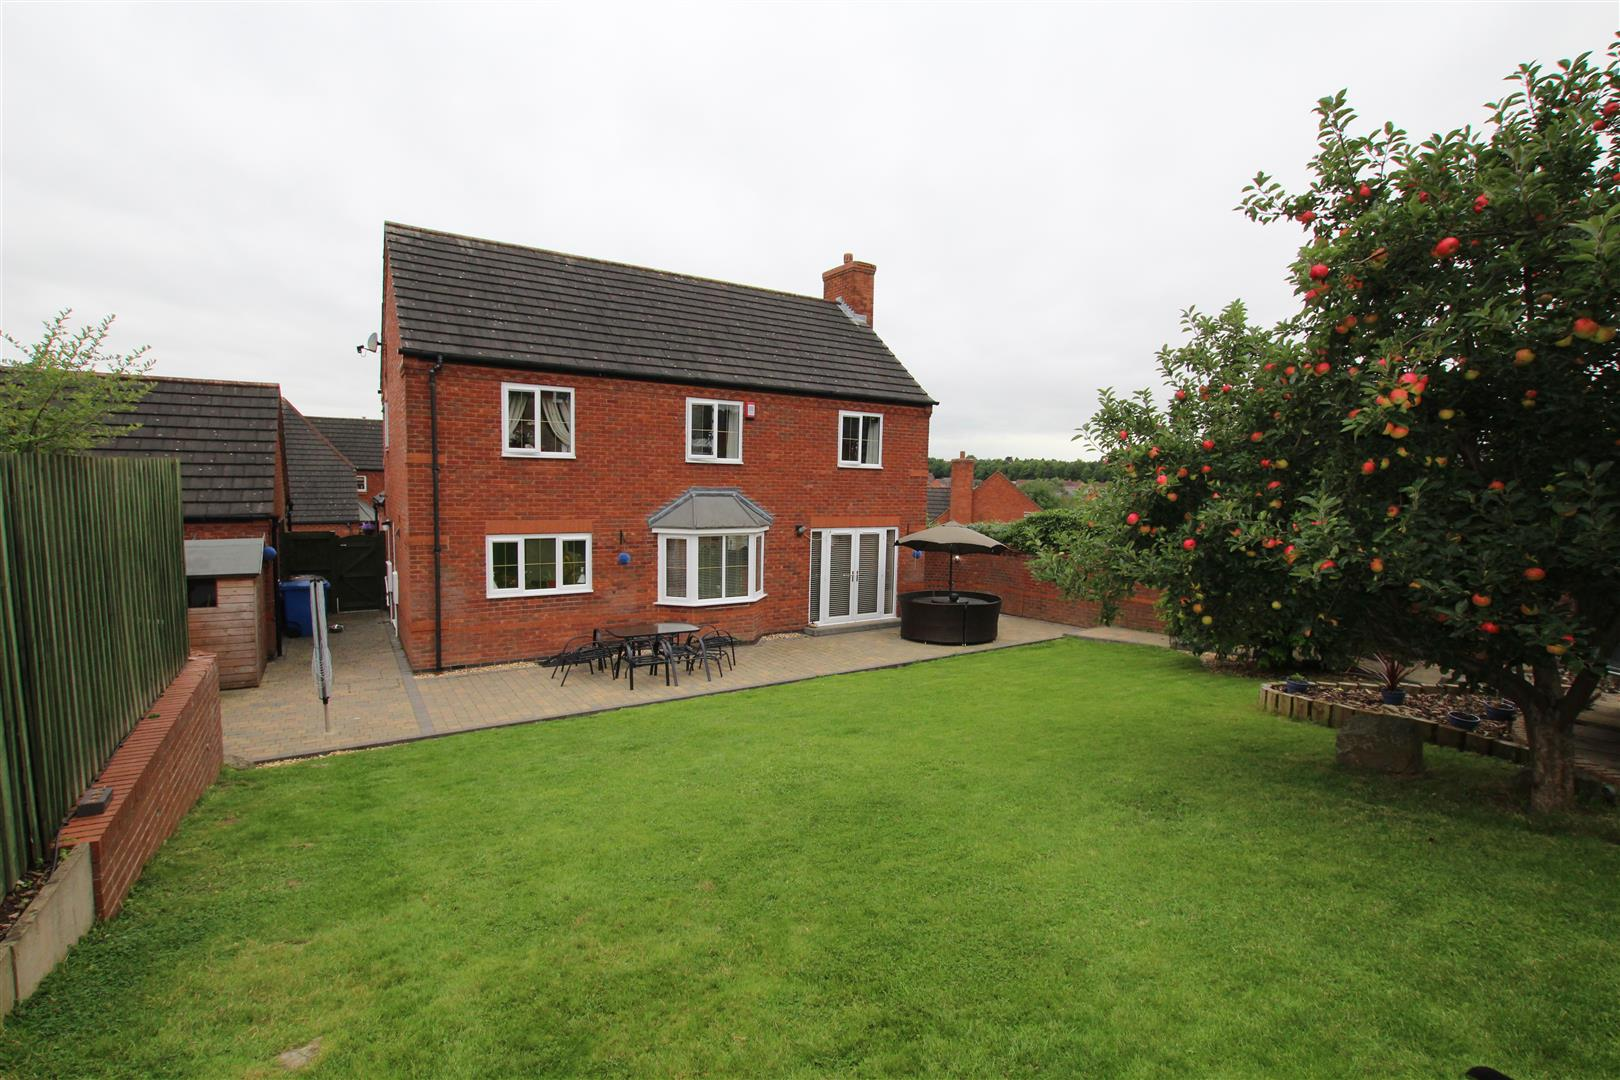 5 bedroom house for sale in brton 28 images 5 bed for 9 bedroom homes for sale